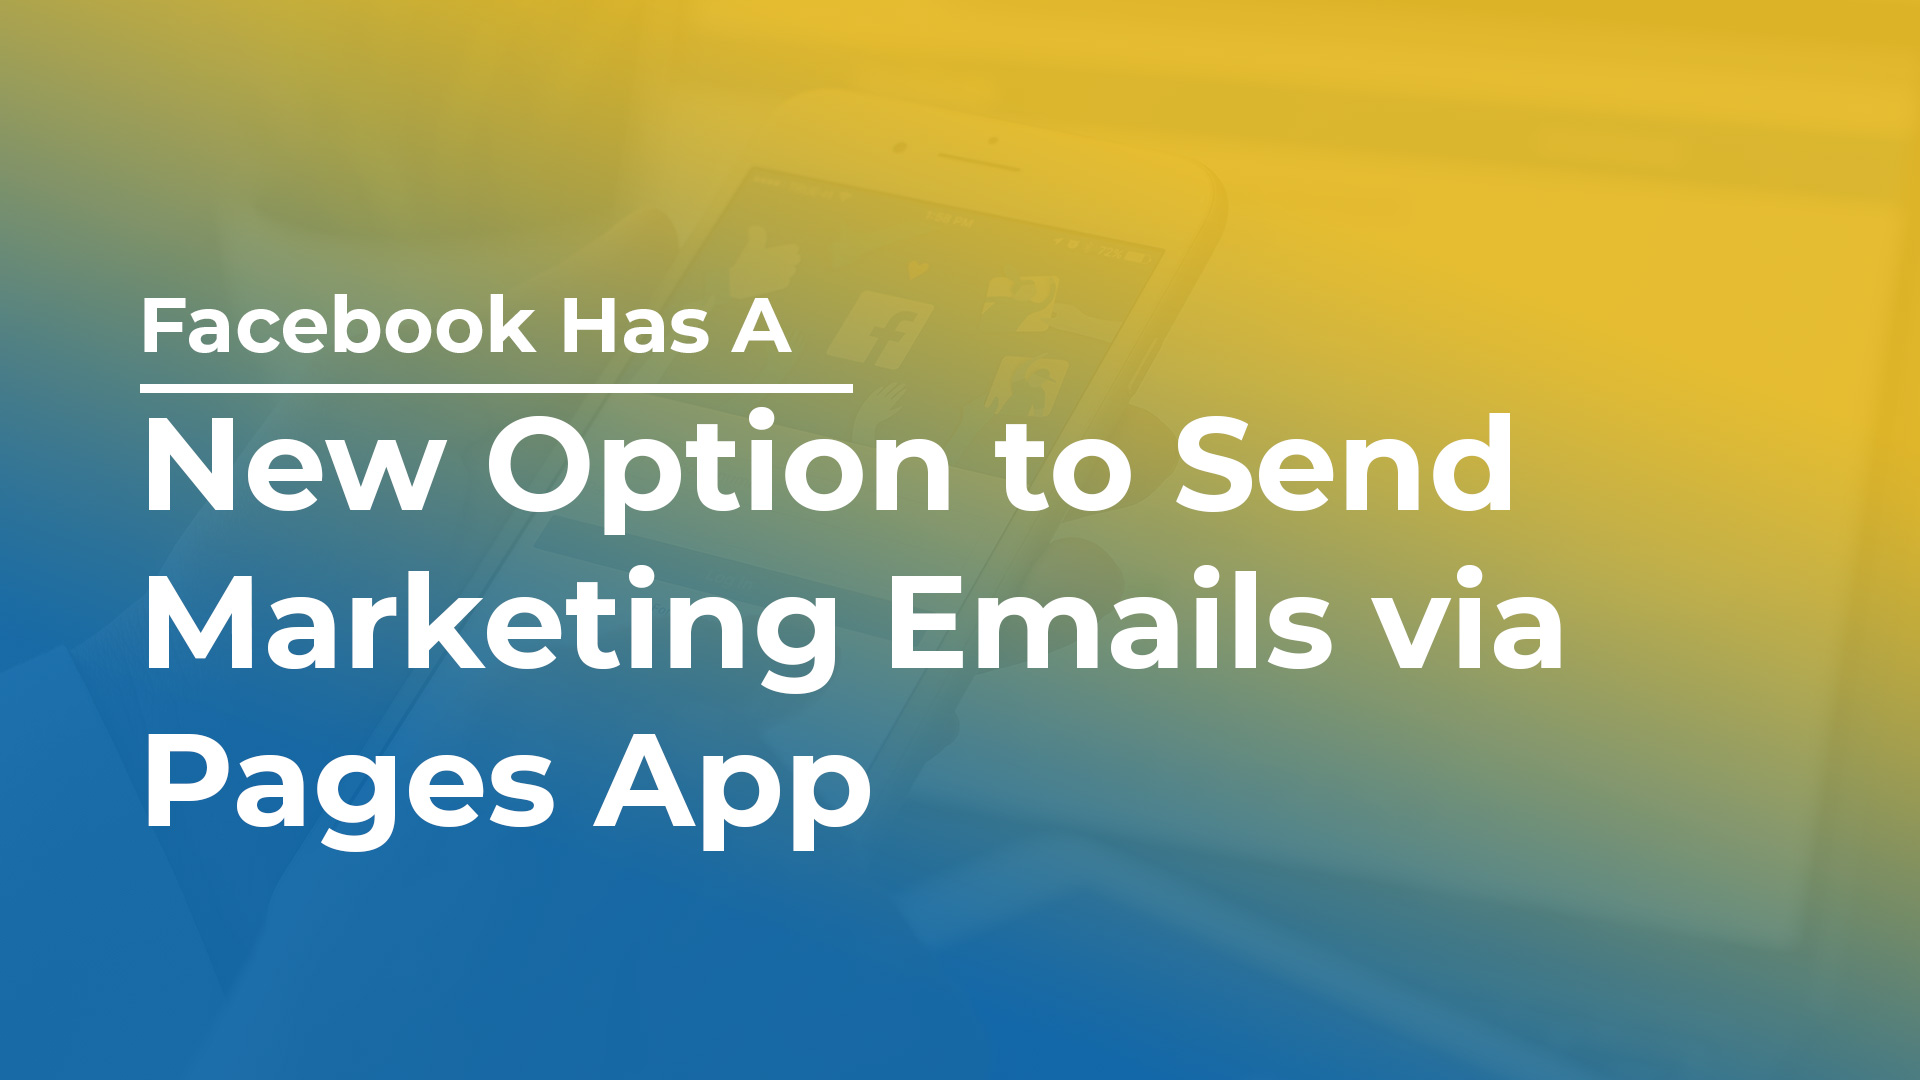 Facebook Has A New Option to Send Marketing Emails via Pages App